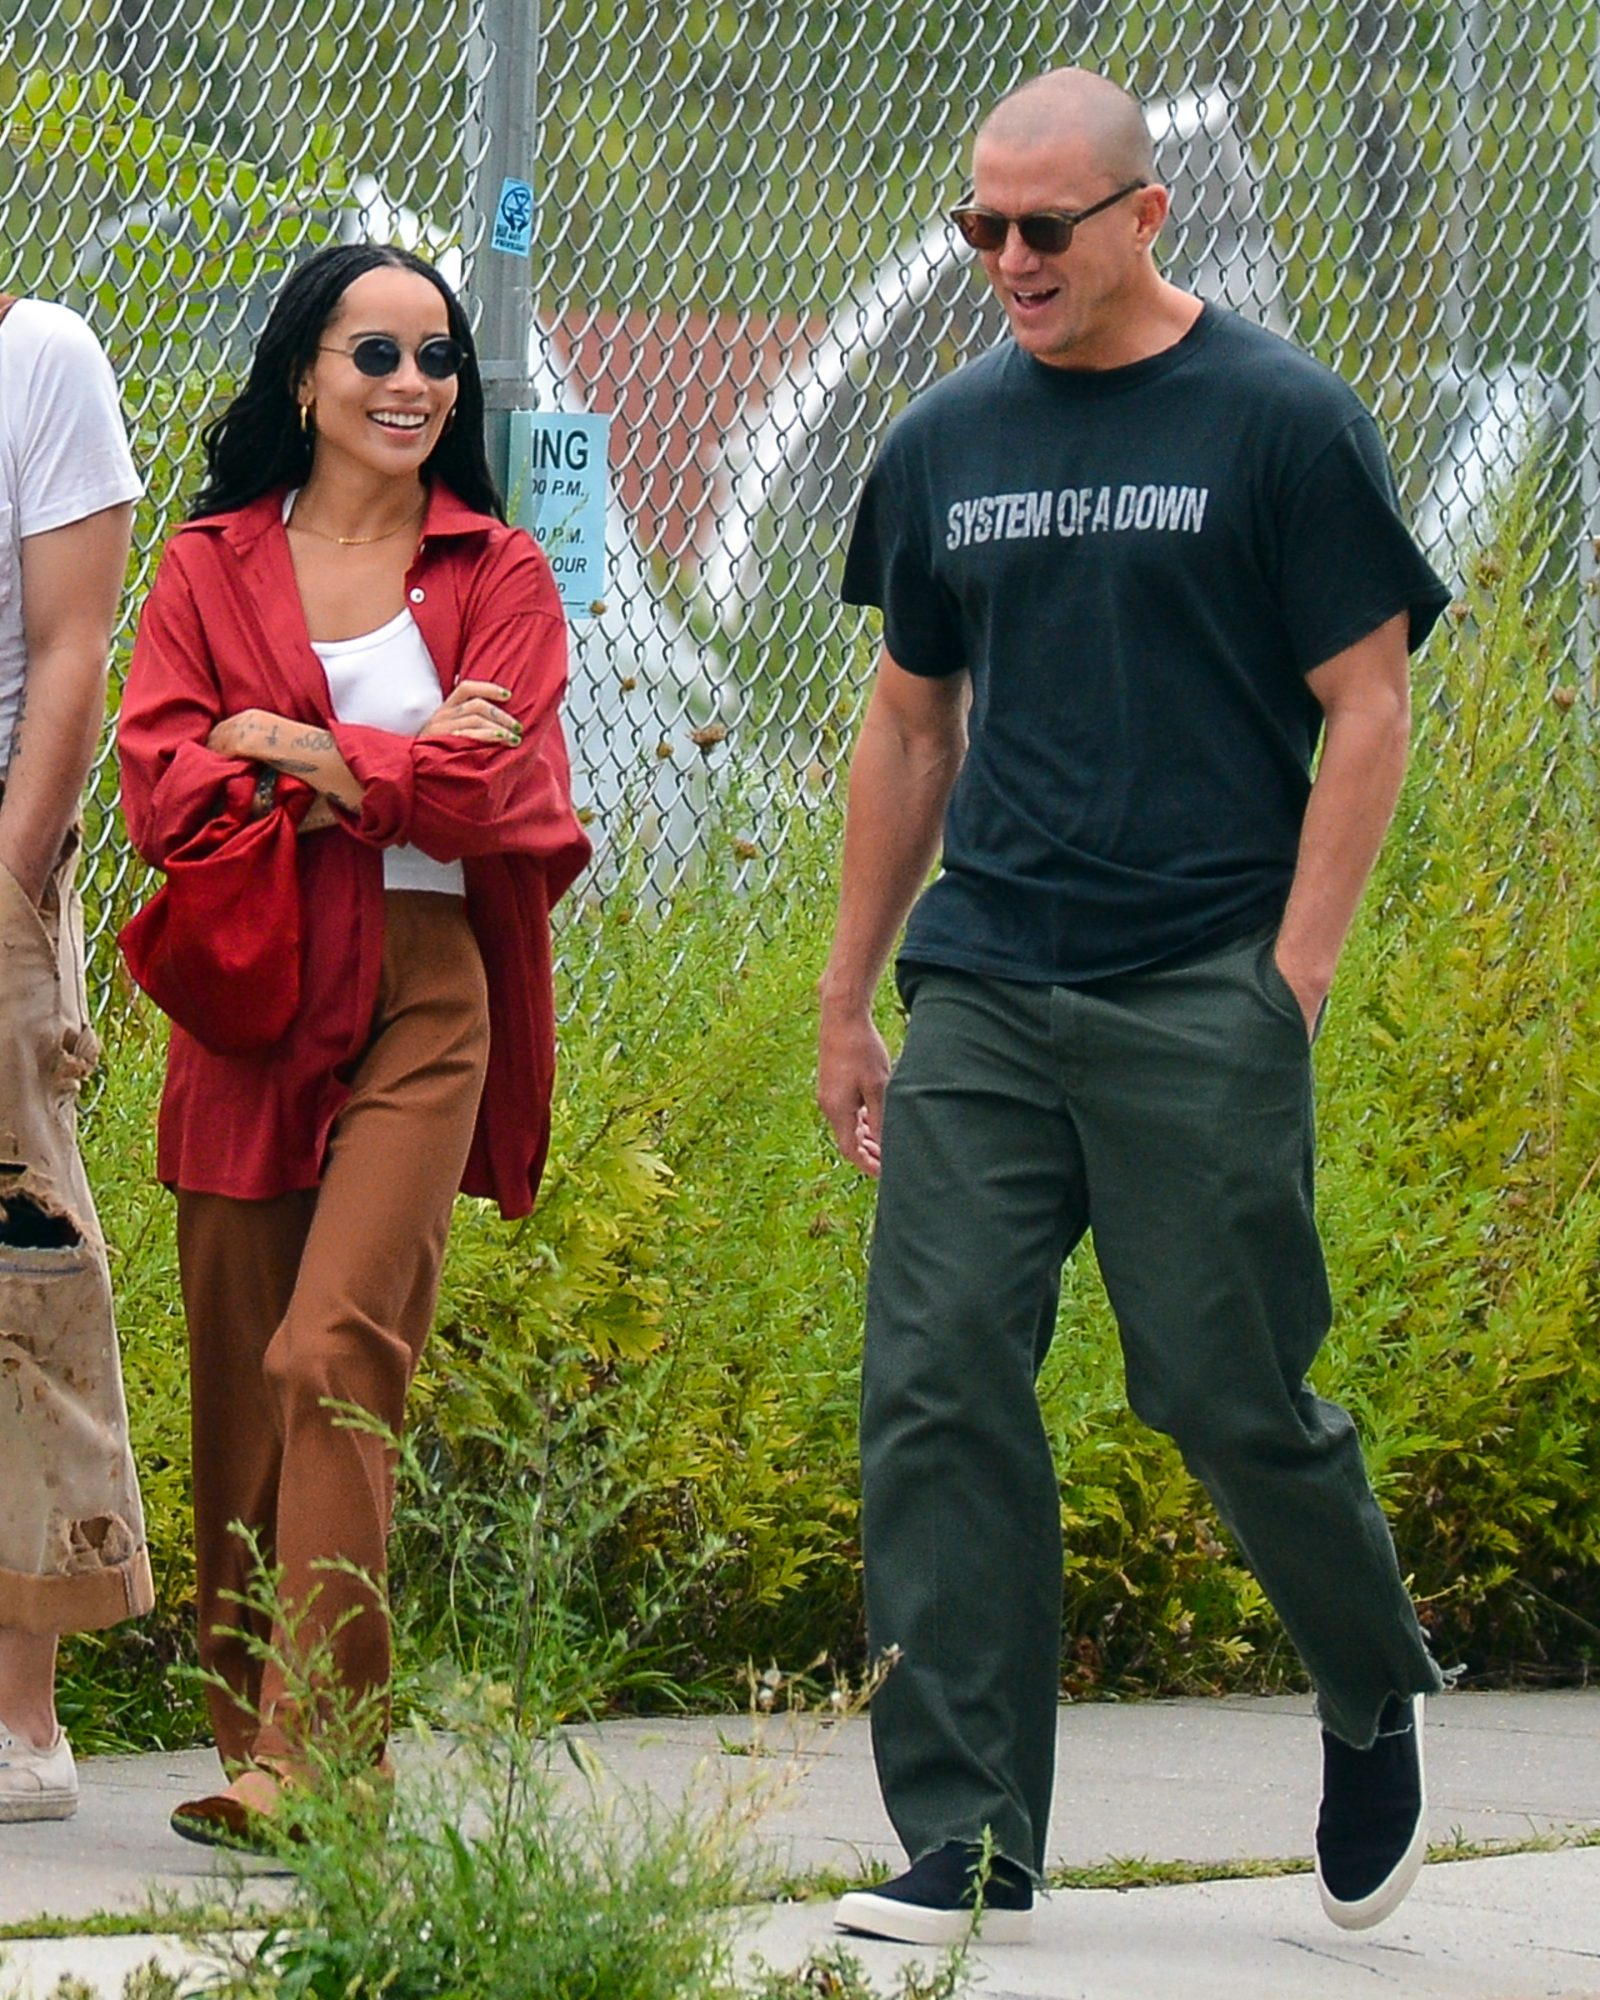 Zoe Kravitz And Channing Tatum Enjoy A Stroll After Dining Alfresco With A Friend In NYC